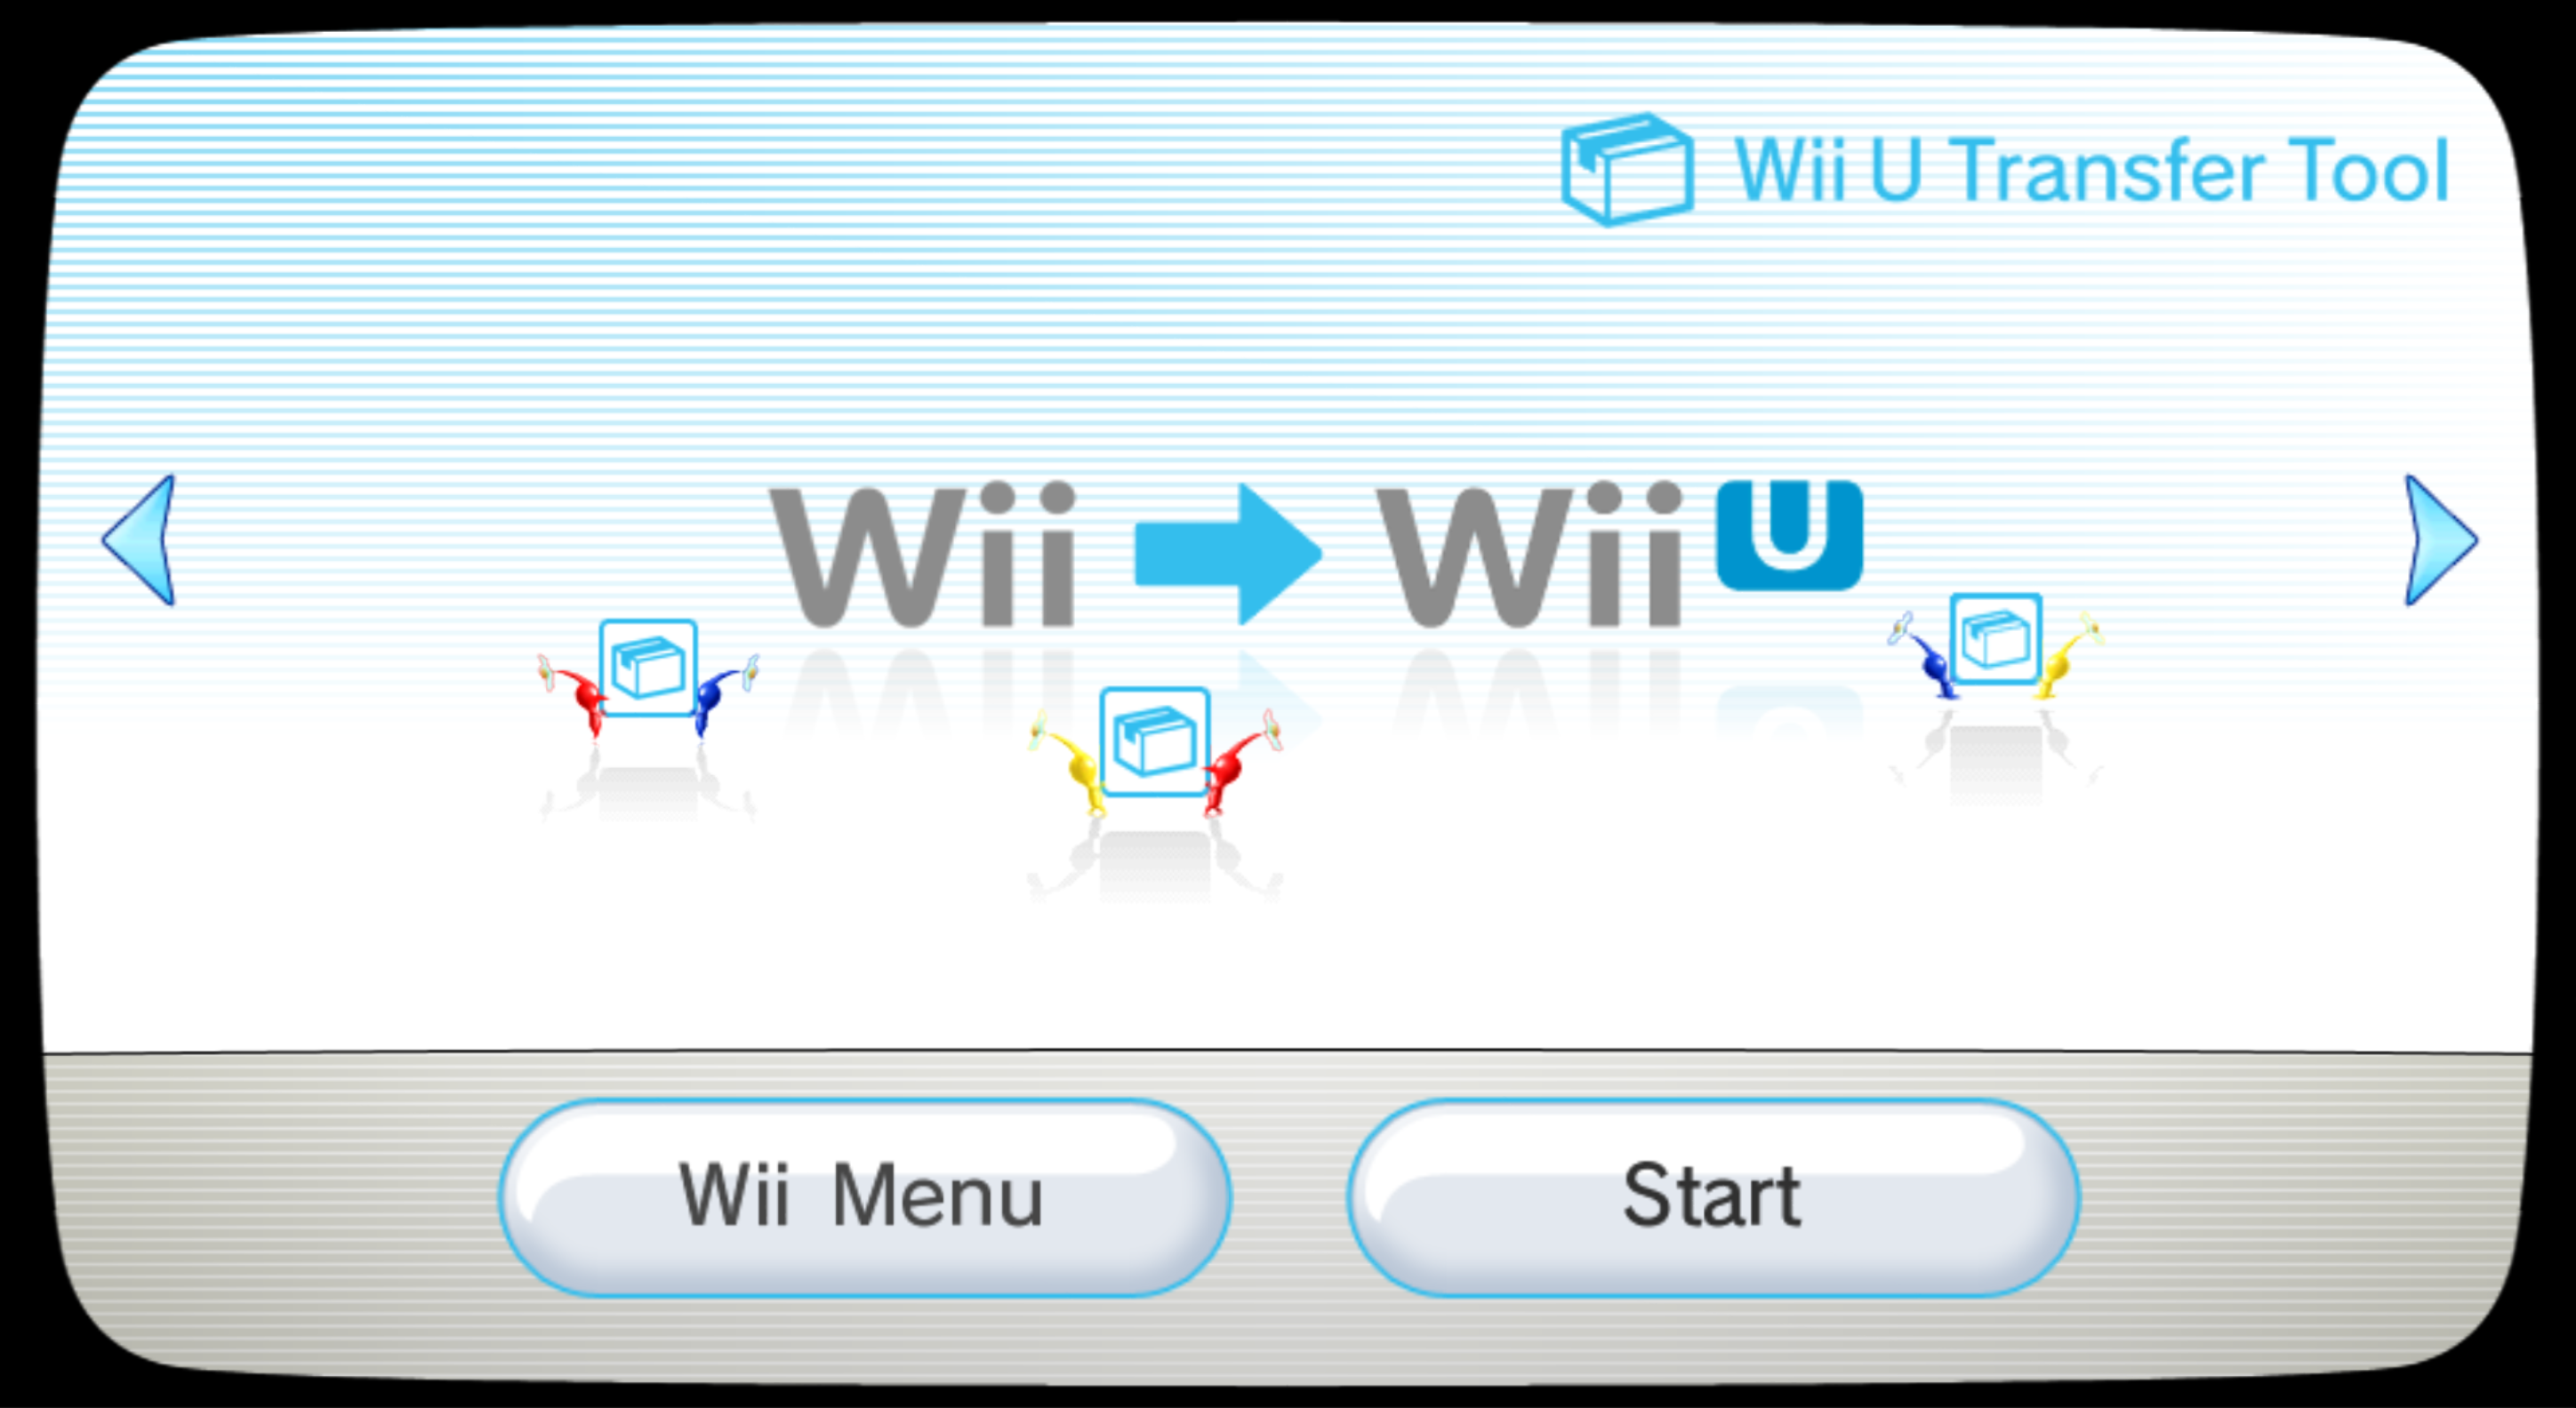 Wii U Emulator for Android to Play Wii U Games on Android